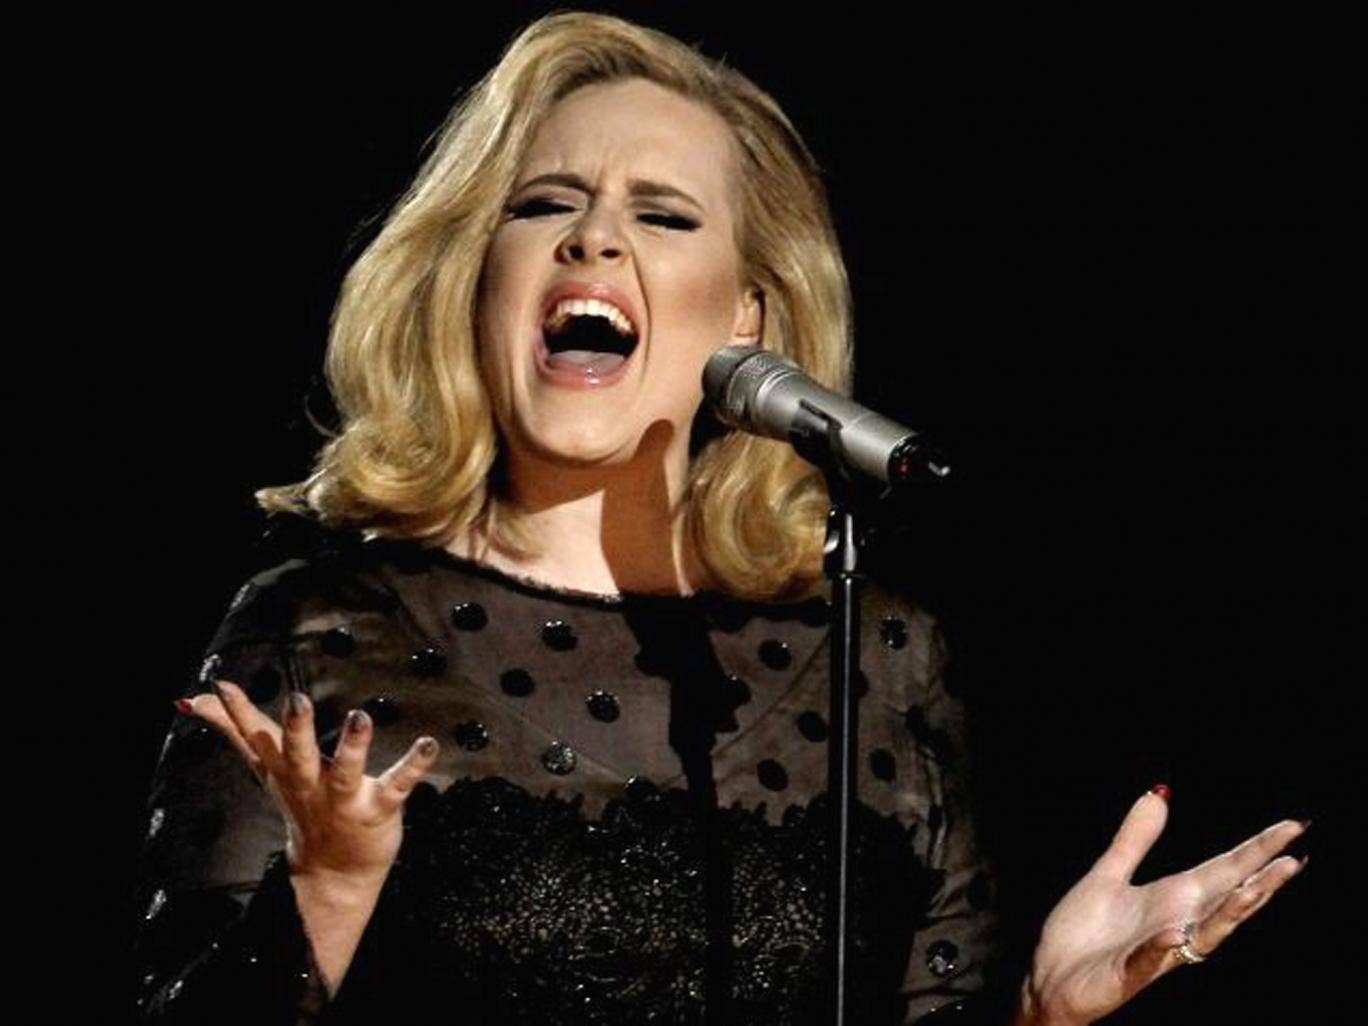 Adele's 21 has topped the US album chart for a second year